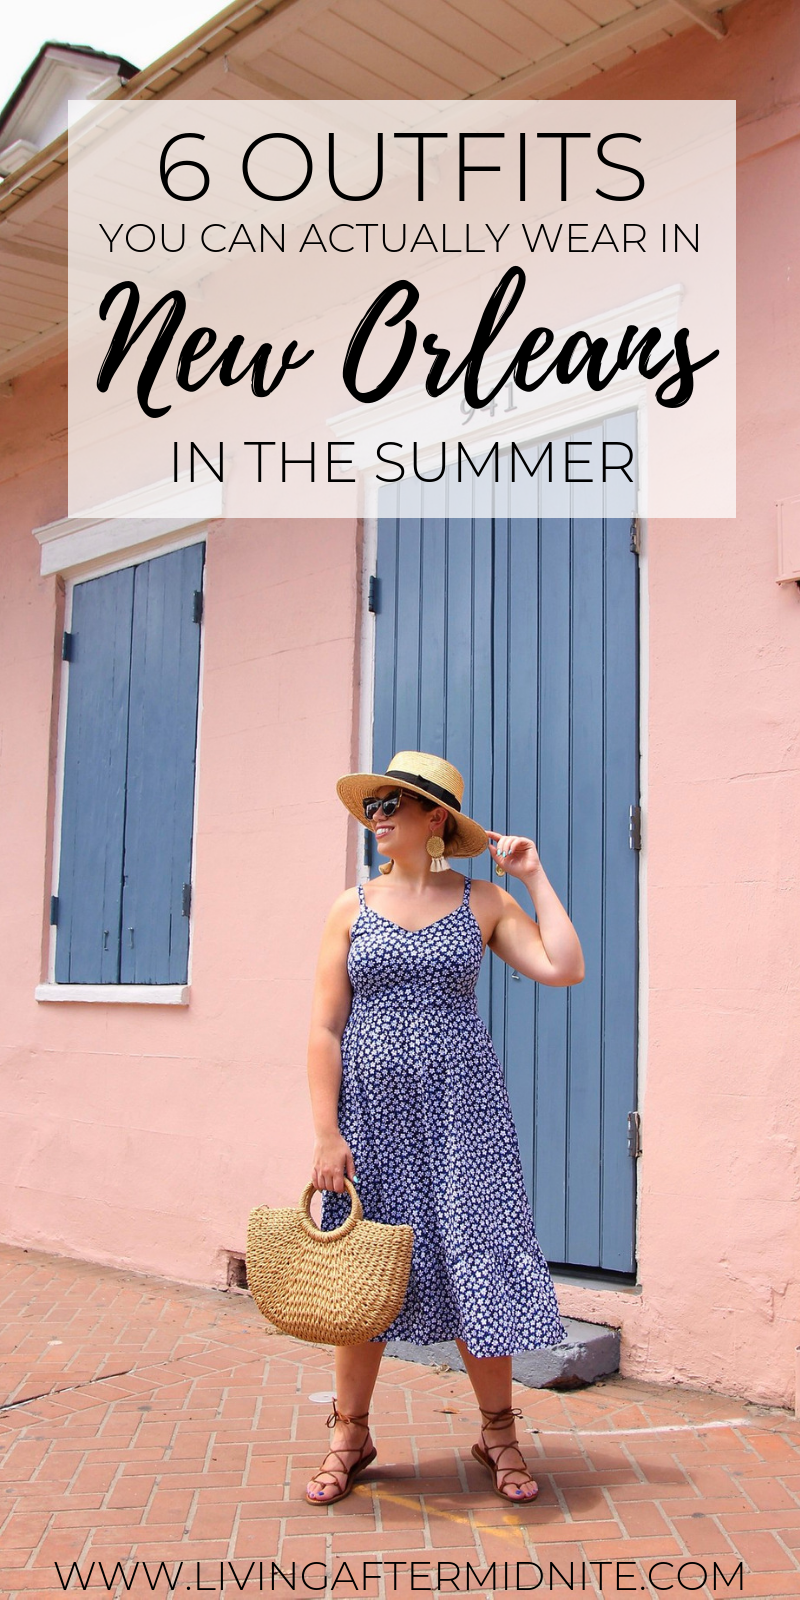 6 Outfits You Can Actually Wear in New Orleans in the Summer | What to Wear in New Orleans in the Summer | New Orleans Packing List | Summer in New Orleans | Best Outfits to Wear in New Orleans | What I Packed for New Orleans